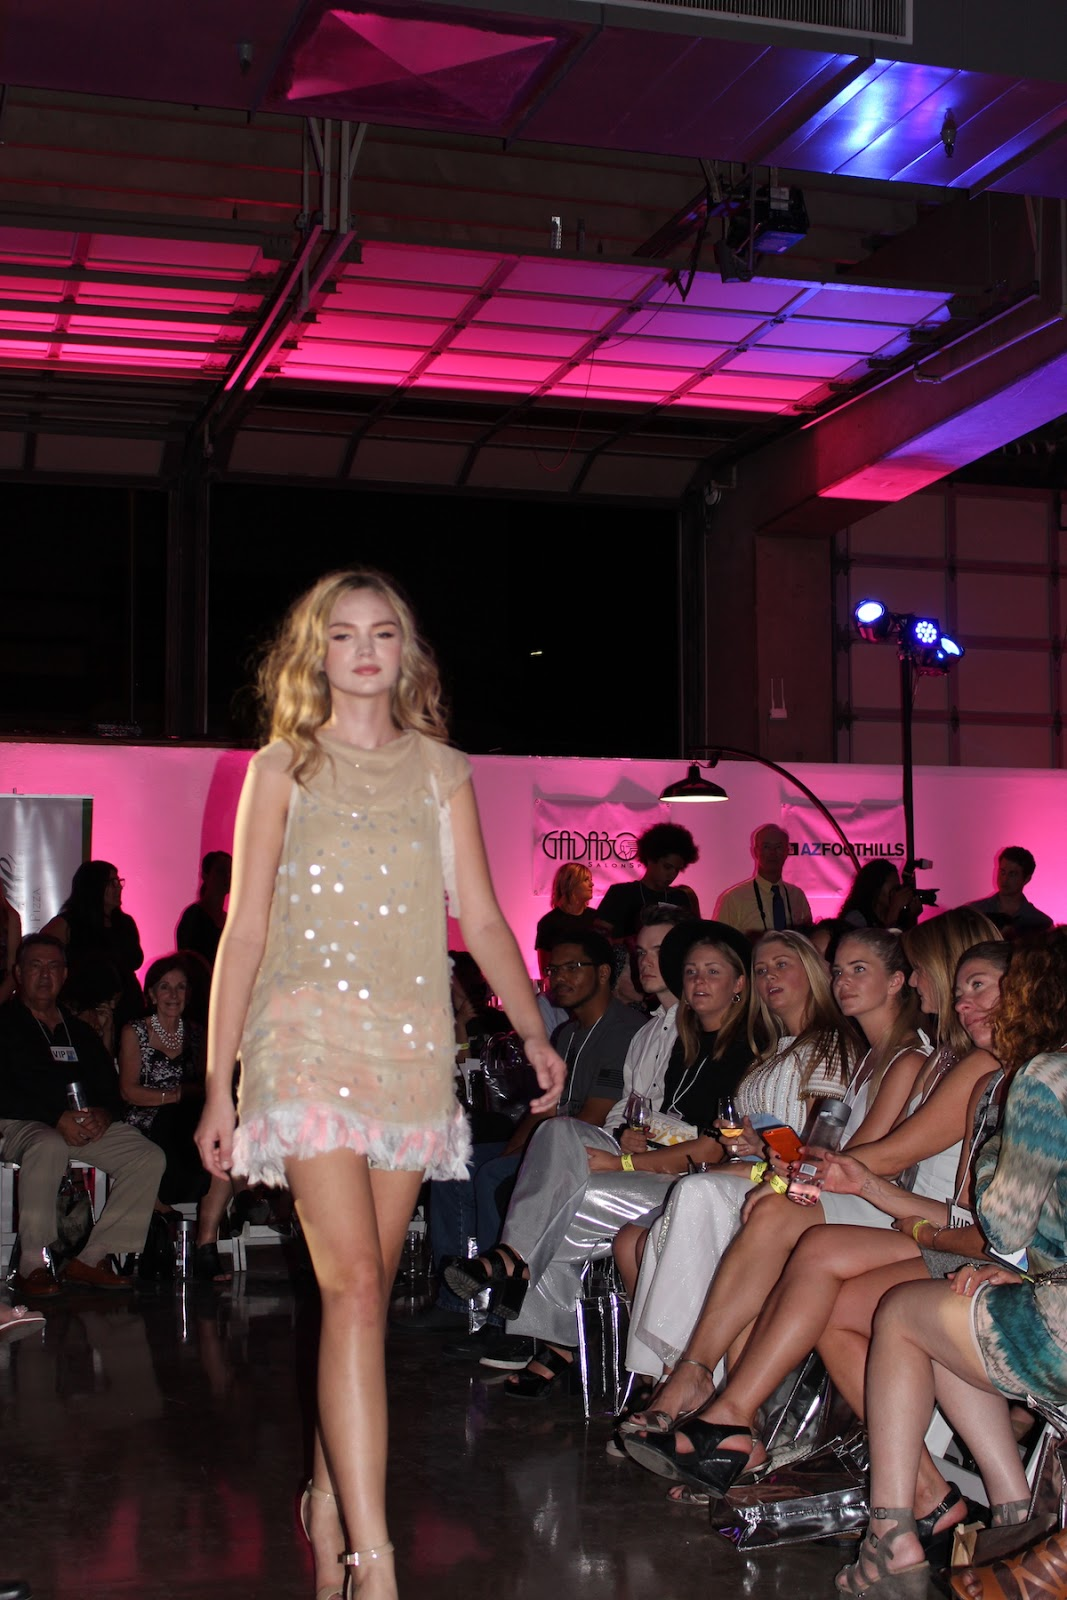 In this photo, the blonde model is walking down the runway in a tan cocktail dress.